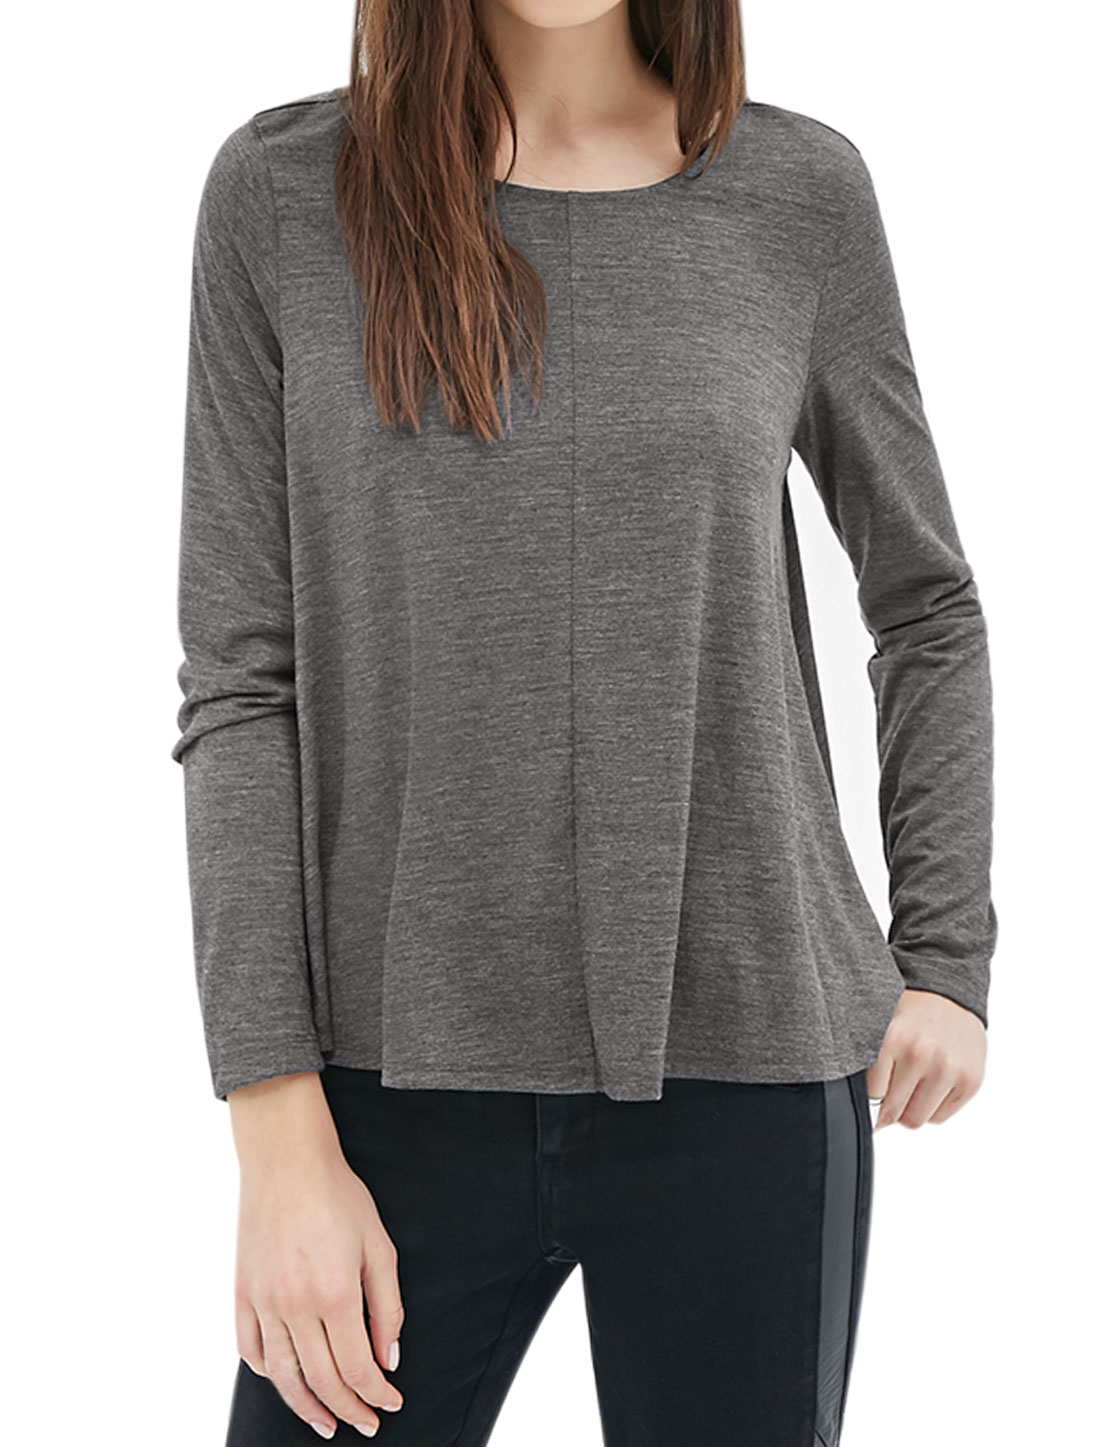 Women Round Neck Long Sleeves Loose Tee Shirt Gray XS